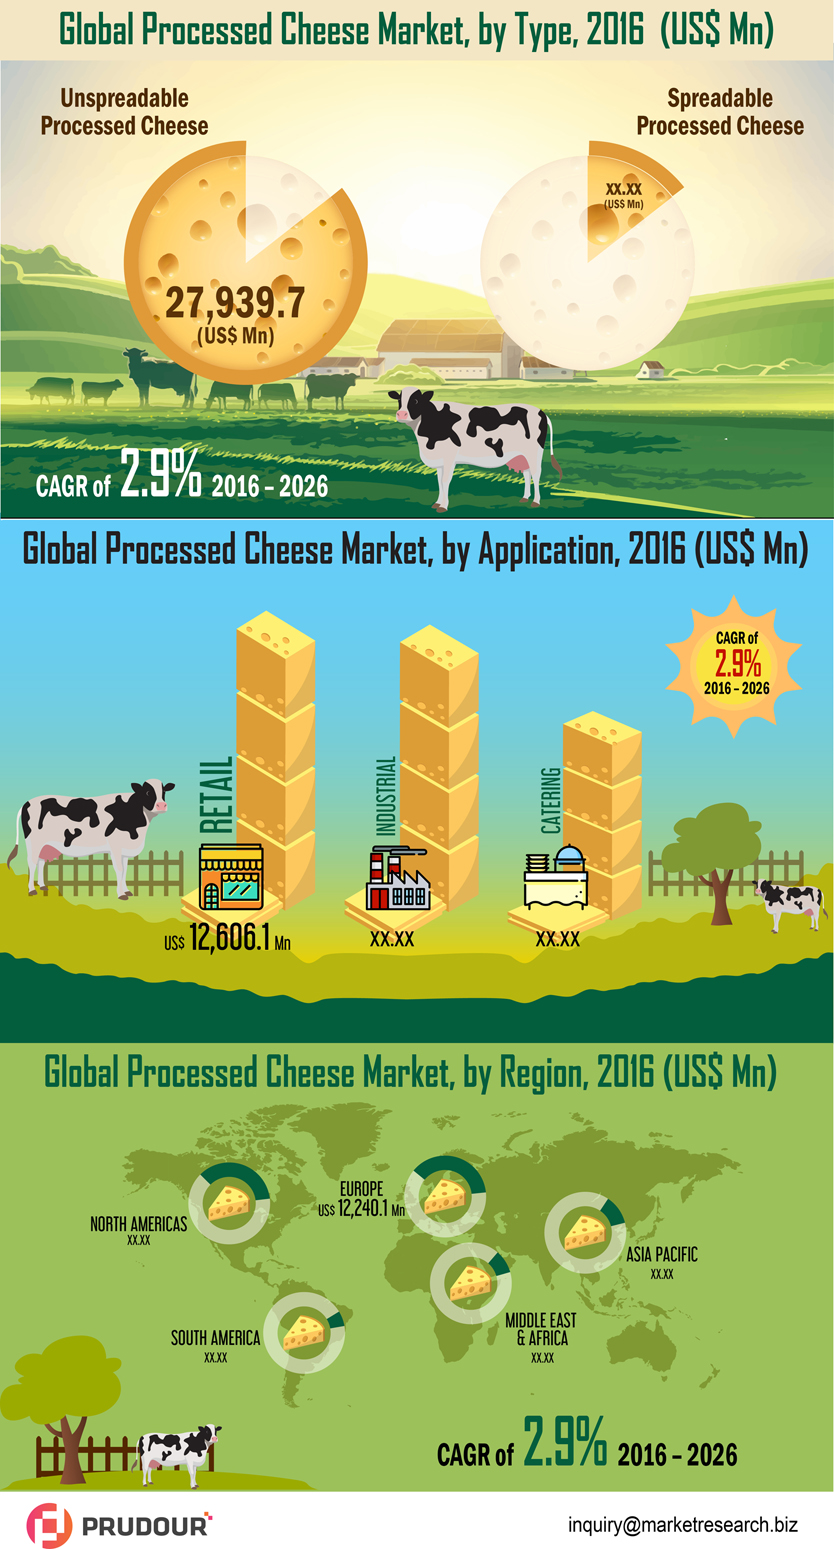 CAGR Of 2.9%: Worldwide Processed Cheese Market Market about to hit CAGR of 2.9% from 2017 to 2026